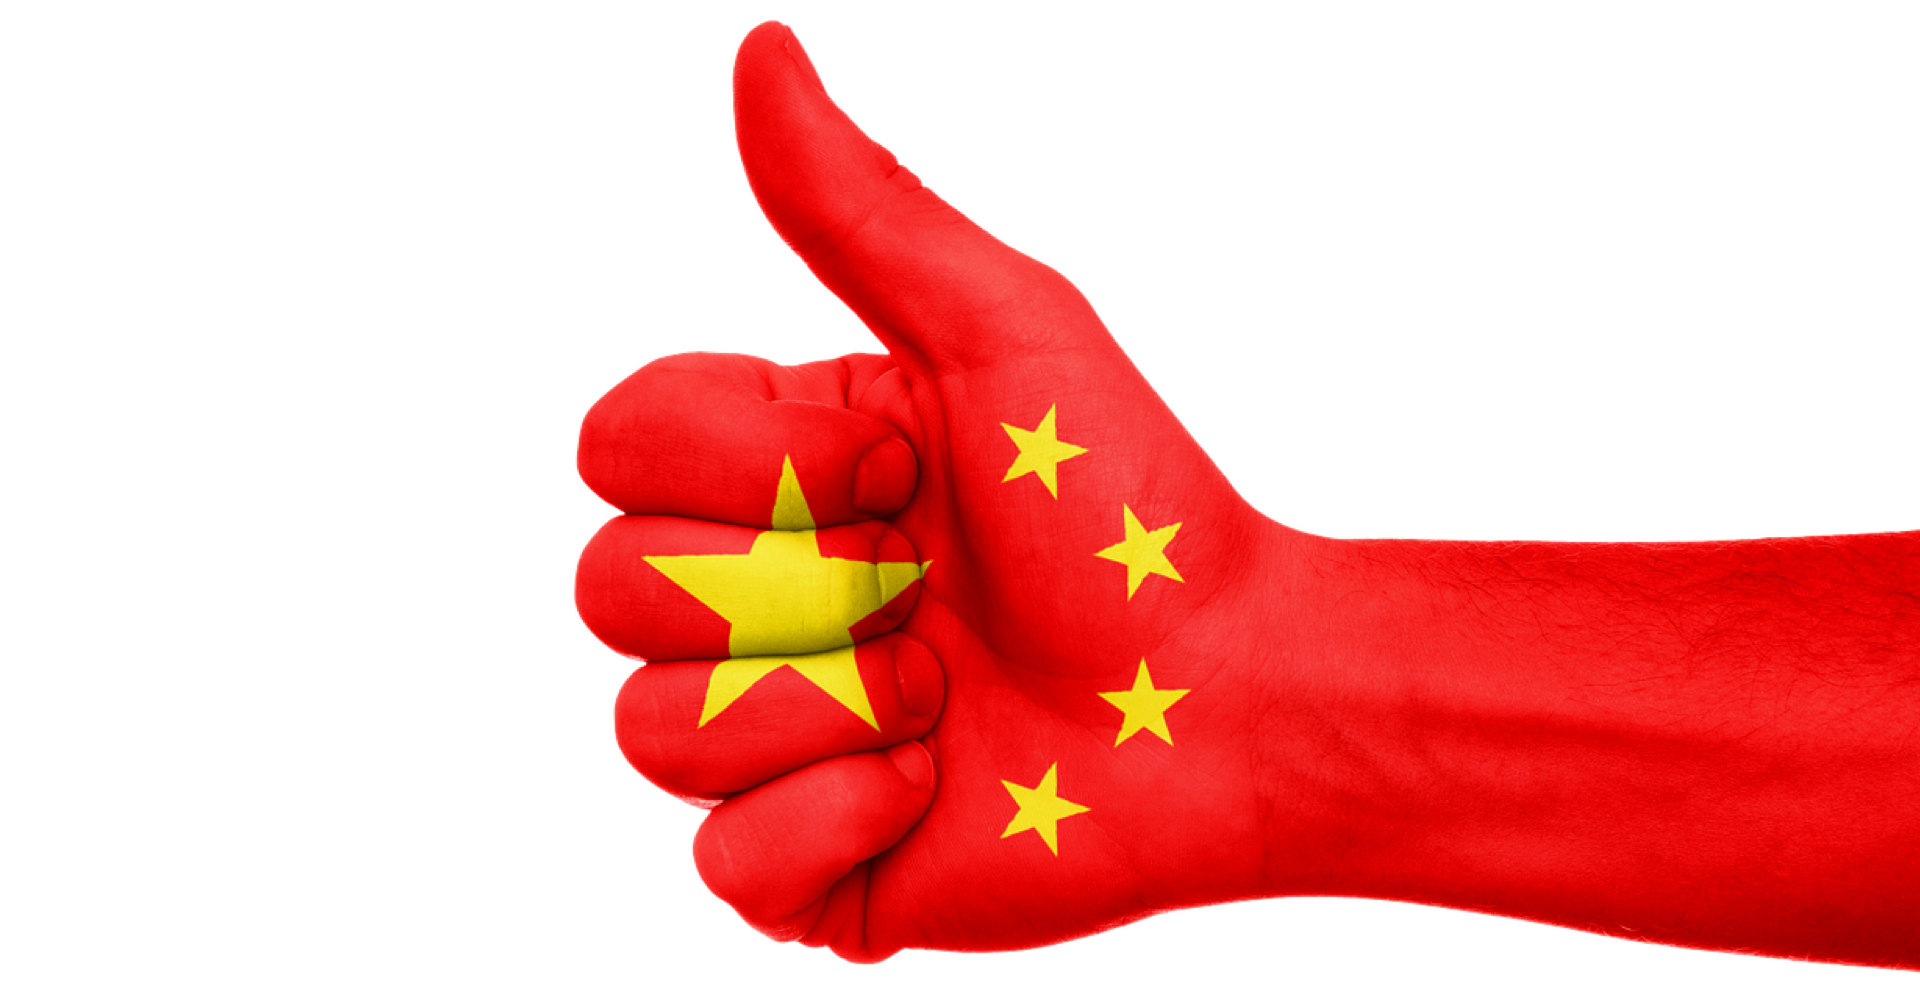 China flag thumbs-uo hand gesture